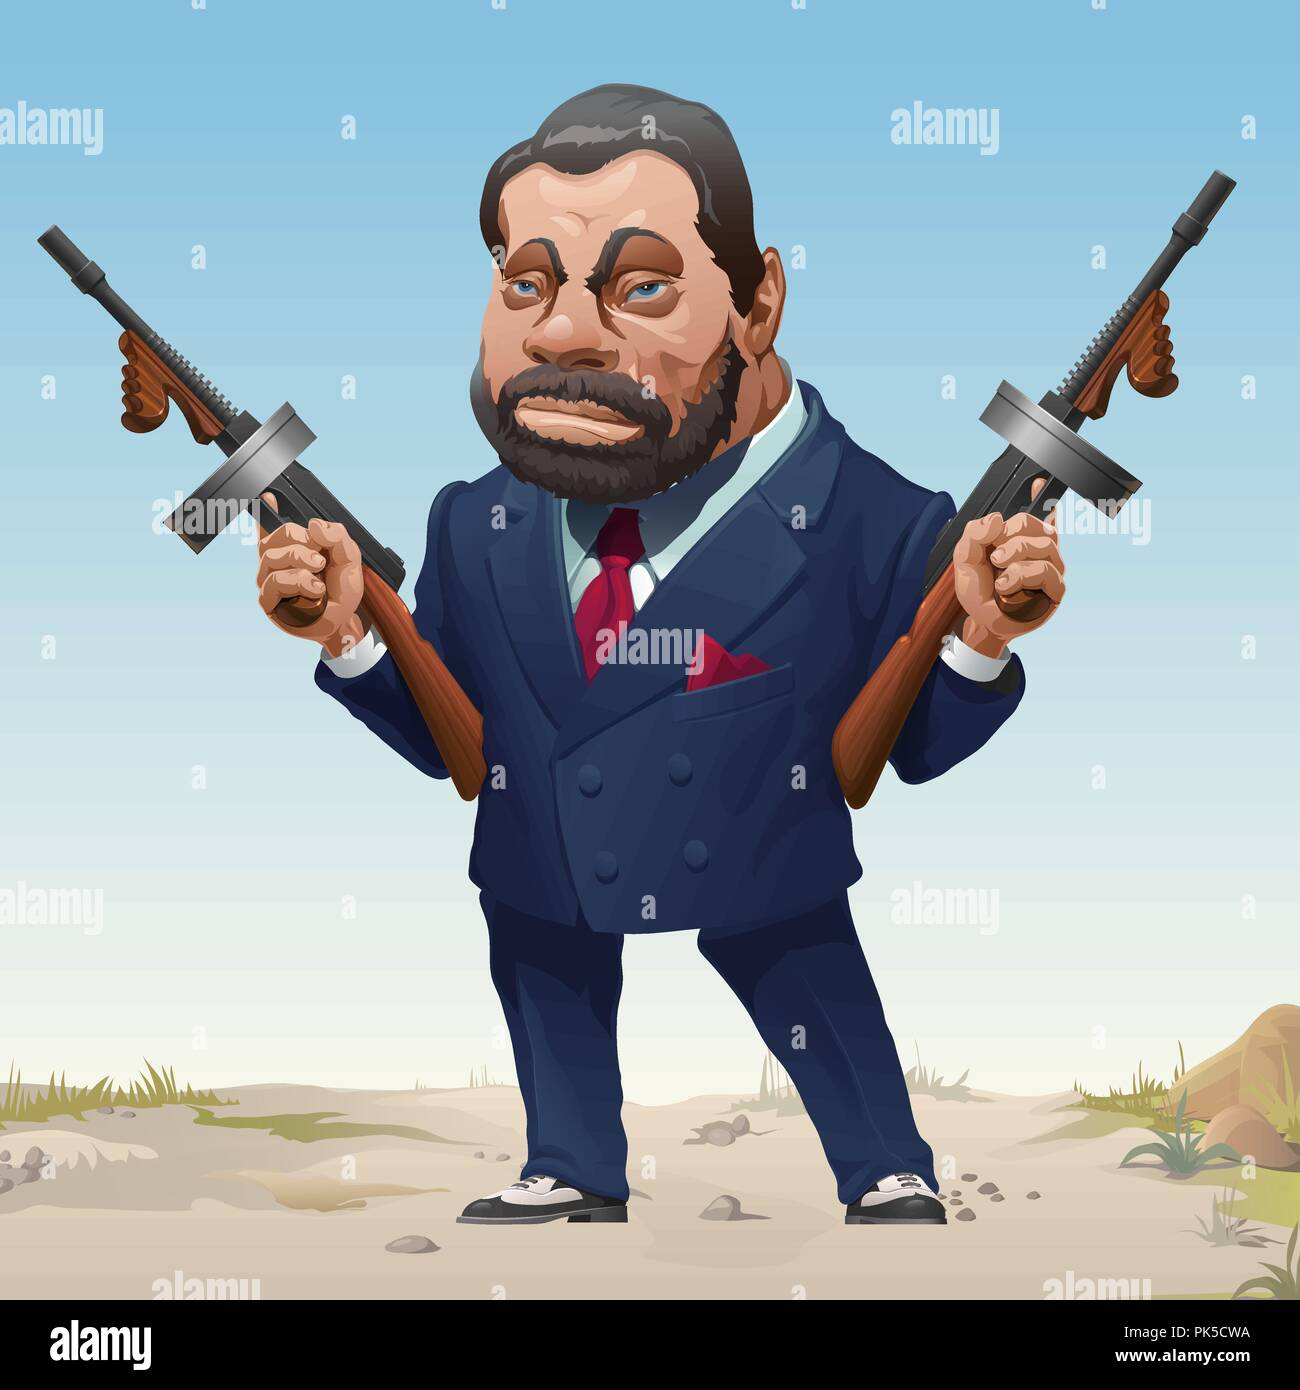 Gangster in stylish business fashion suit and sneakers armed with two machine guns. Bandit of wild West. Serious criminal male with a beard and mustache threatens a firearm. Vector cartoon close-up. - Stock Image